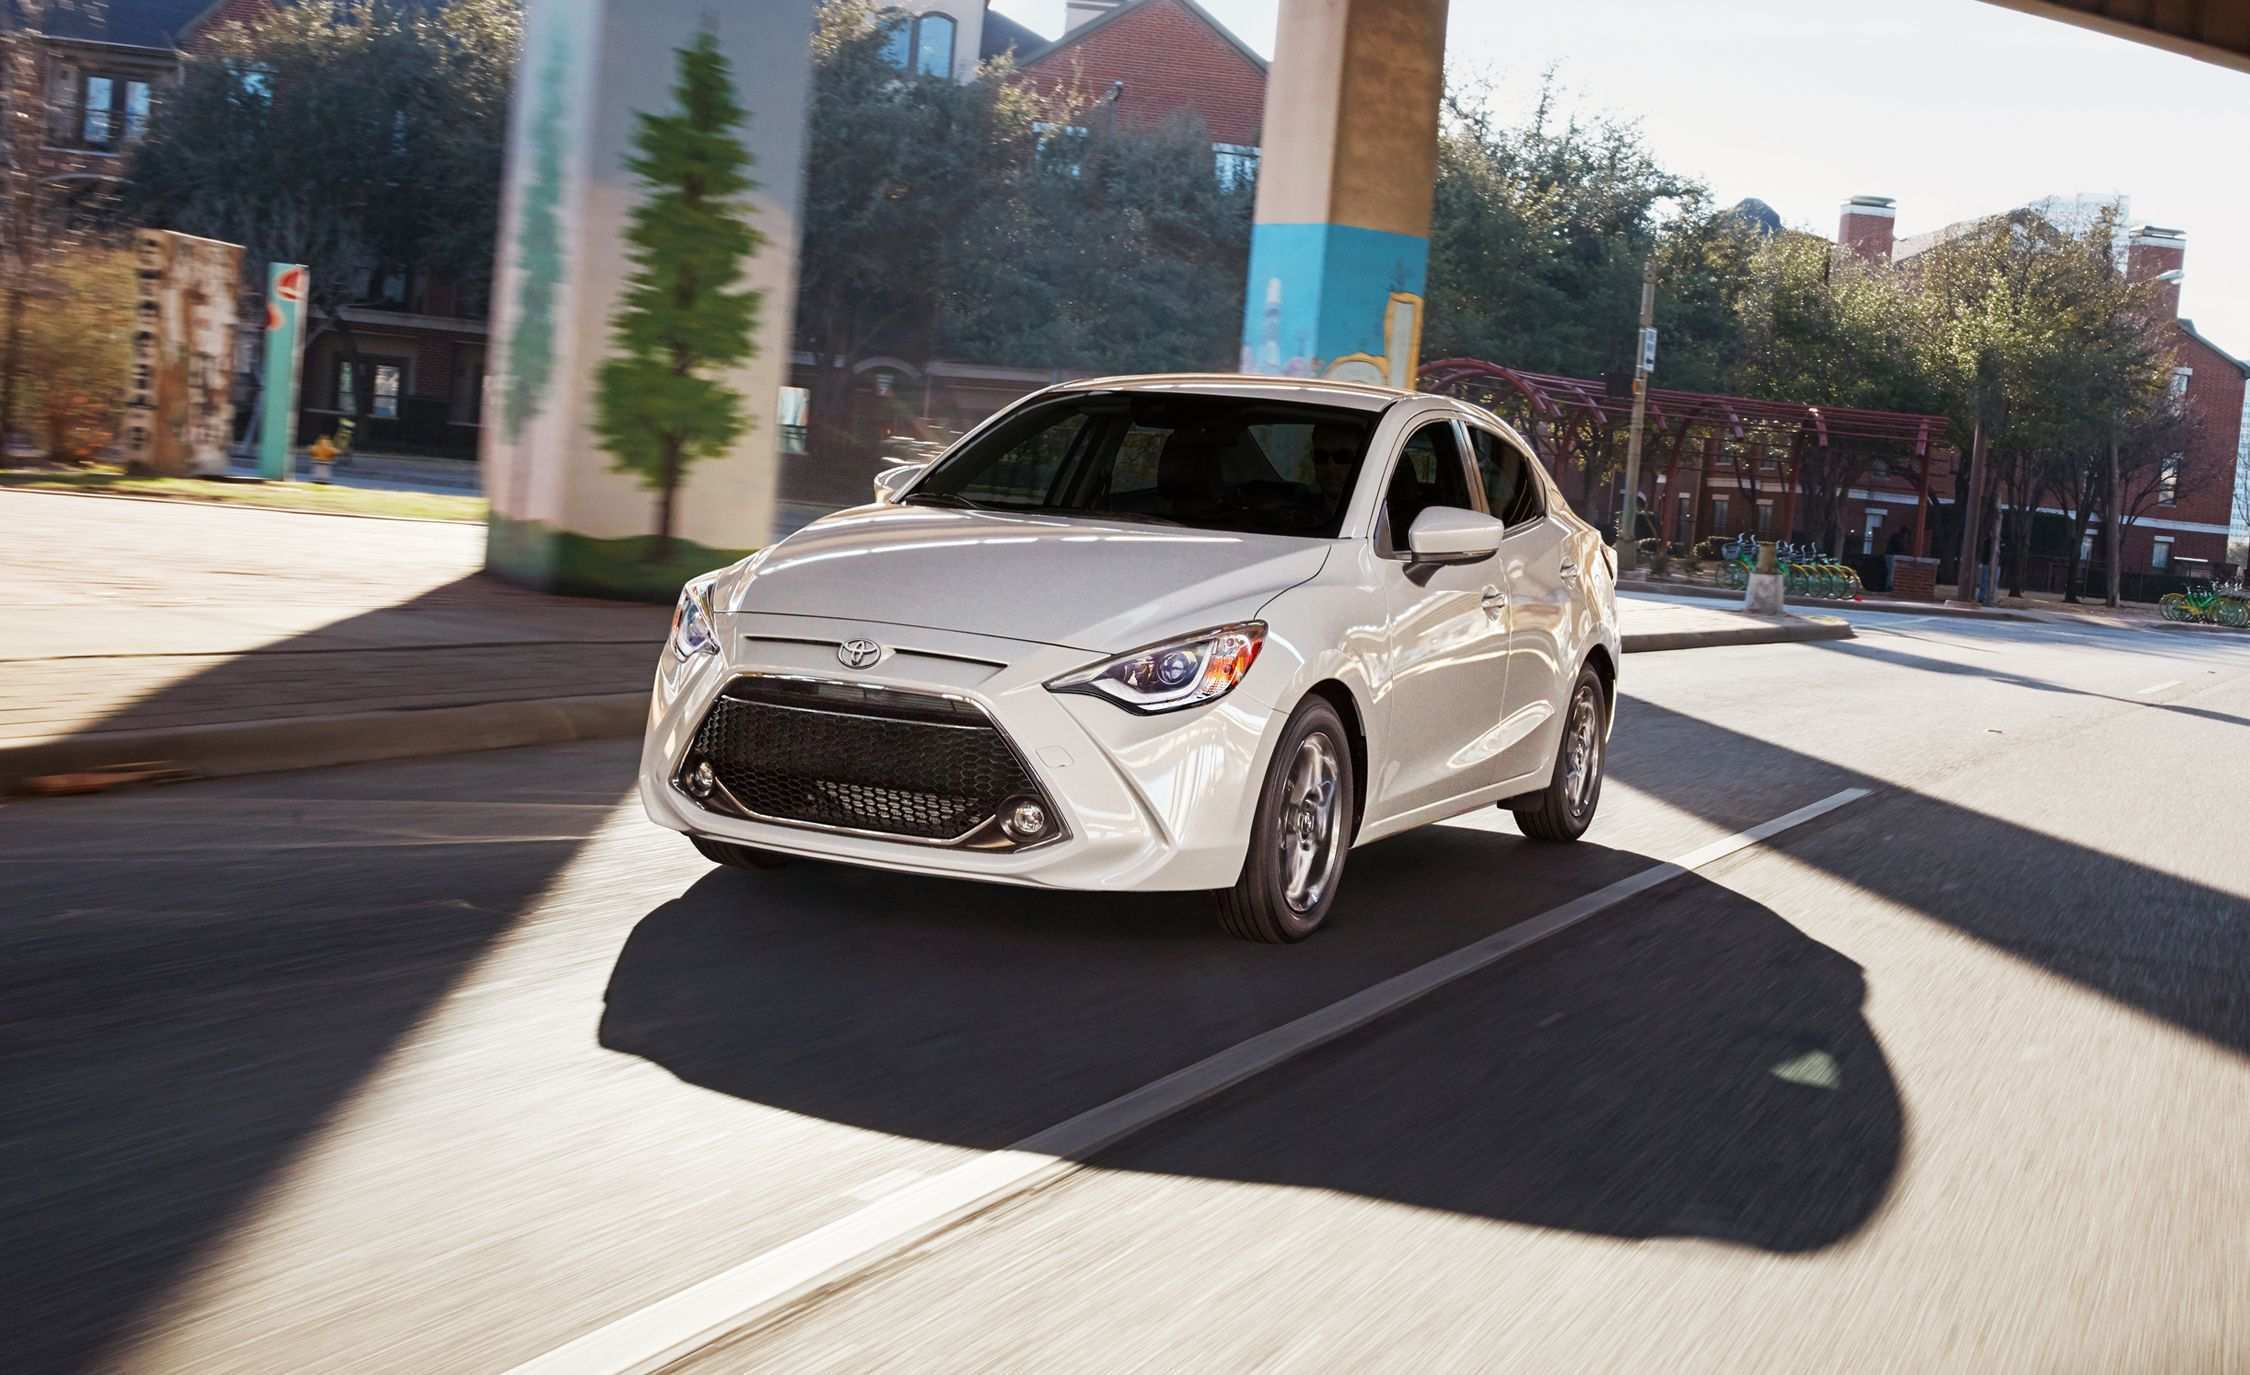 20 Gallery of New Sedan Toyota 2019 Overview And Price Pictures for New Sedan Toyota 2019 Overview And Price